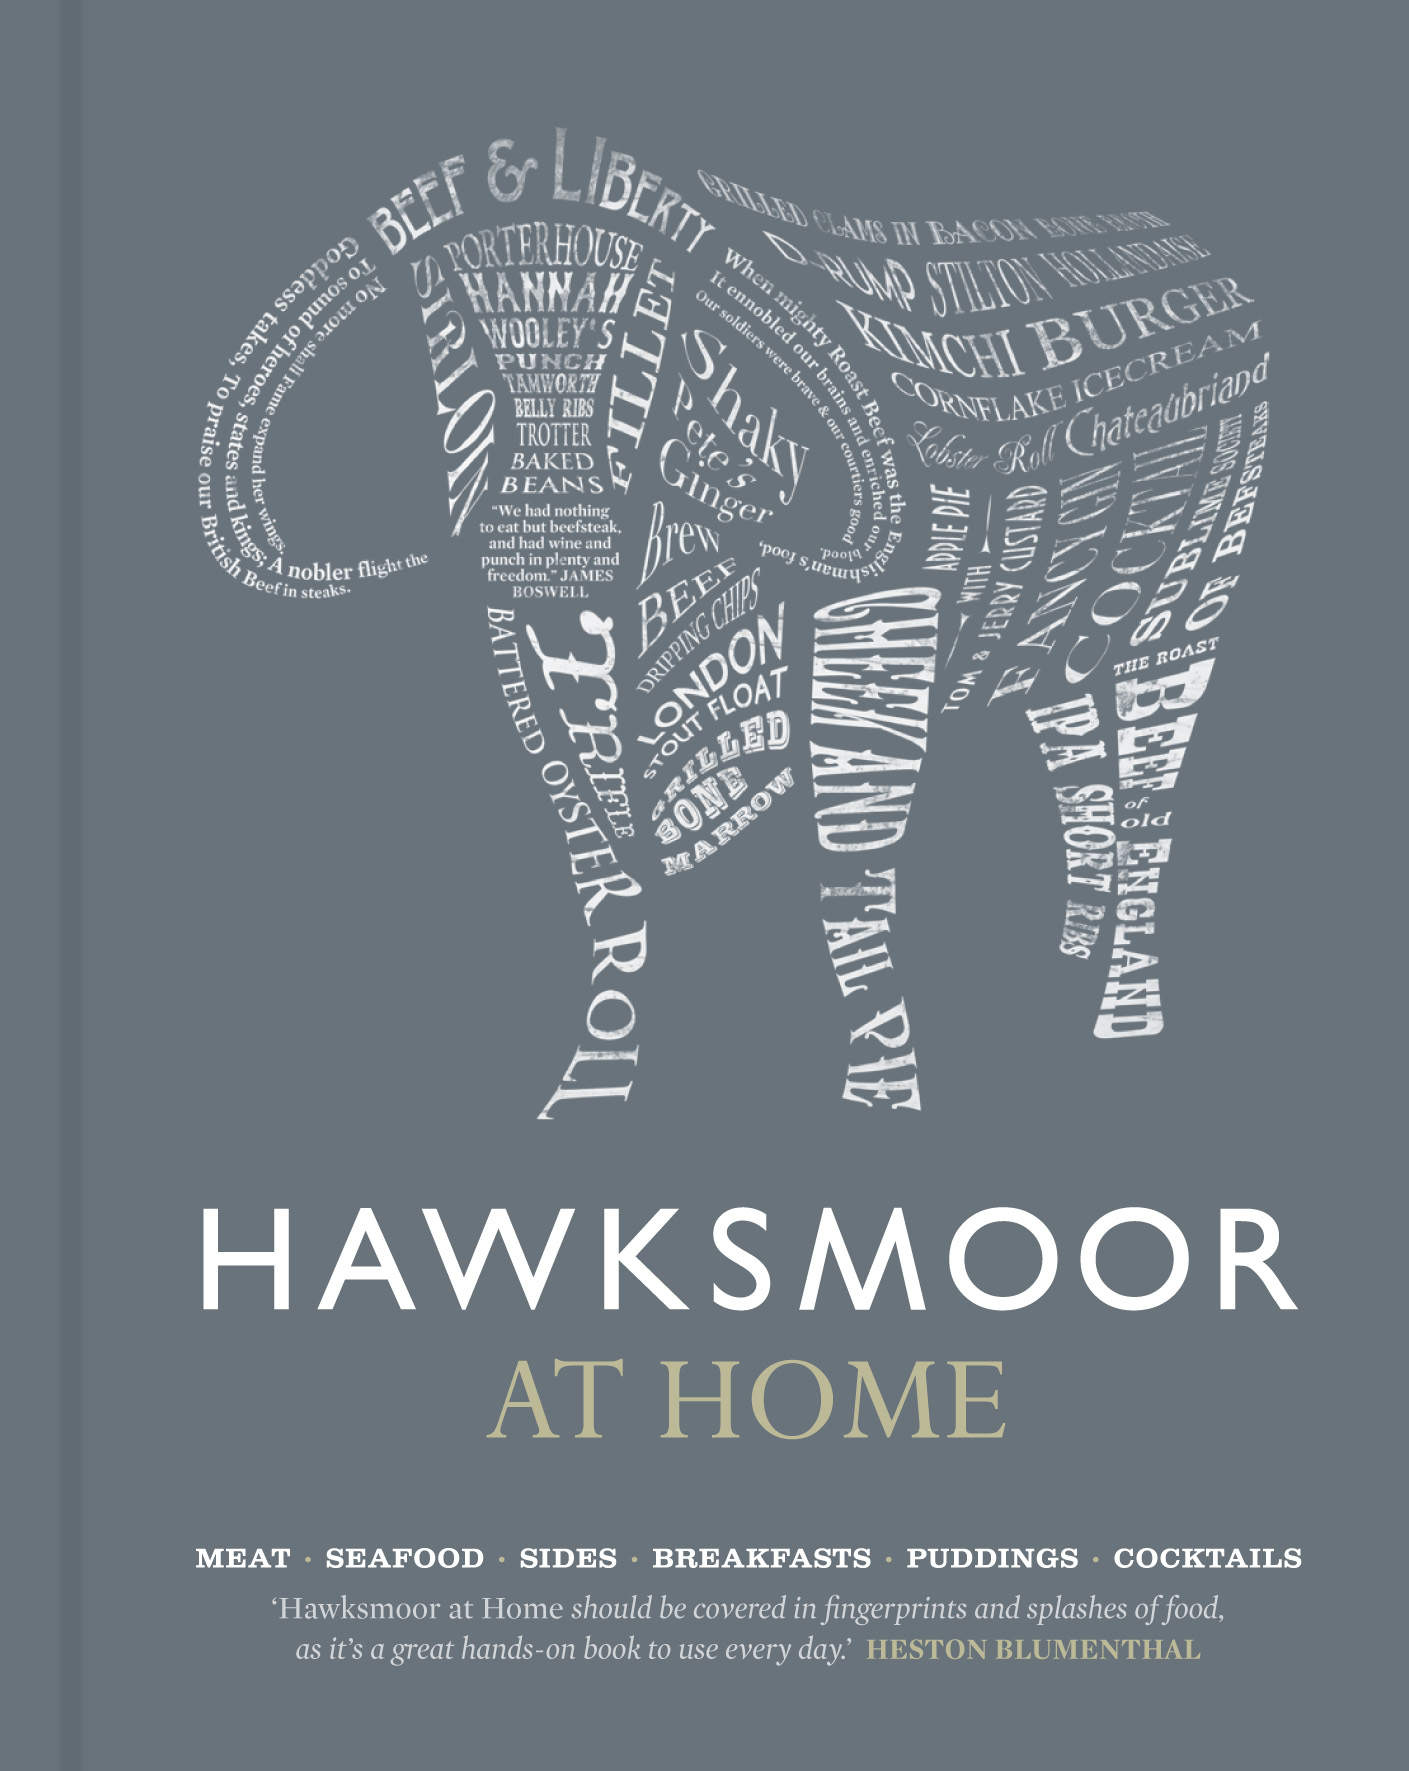 Hawksmoor at Home: Meat - Seafood - Sides - Breakfasts - Puddings - Cocktails by Huw Gott  ,     Richard Turner  ,     Will Beckett, ISBN: 9781848093355